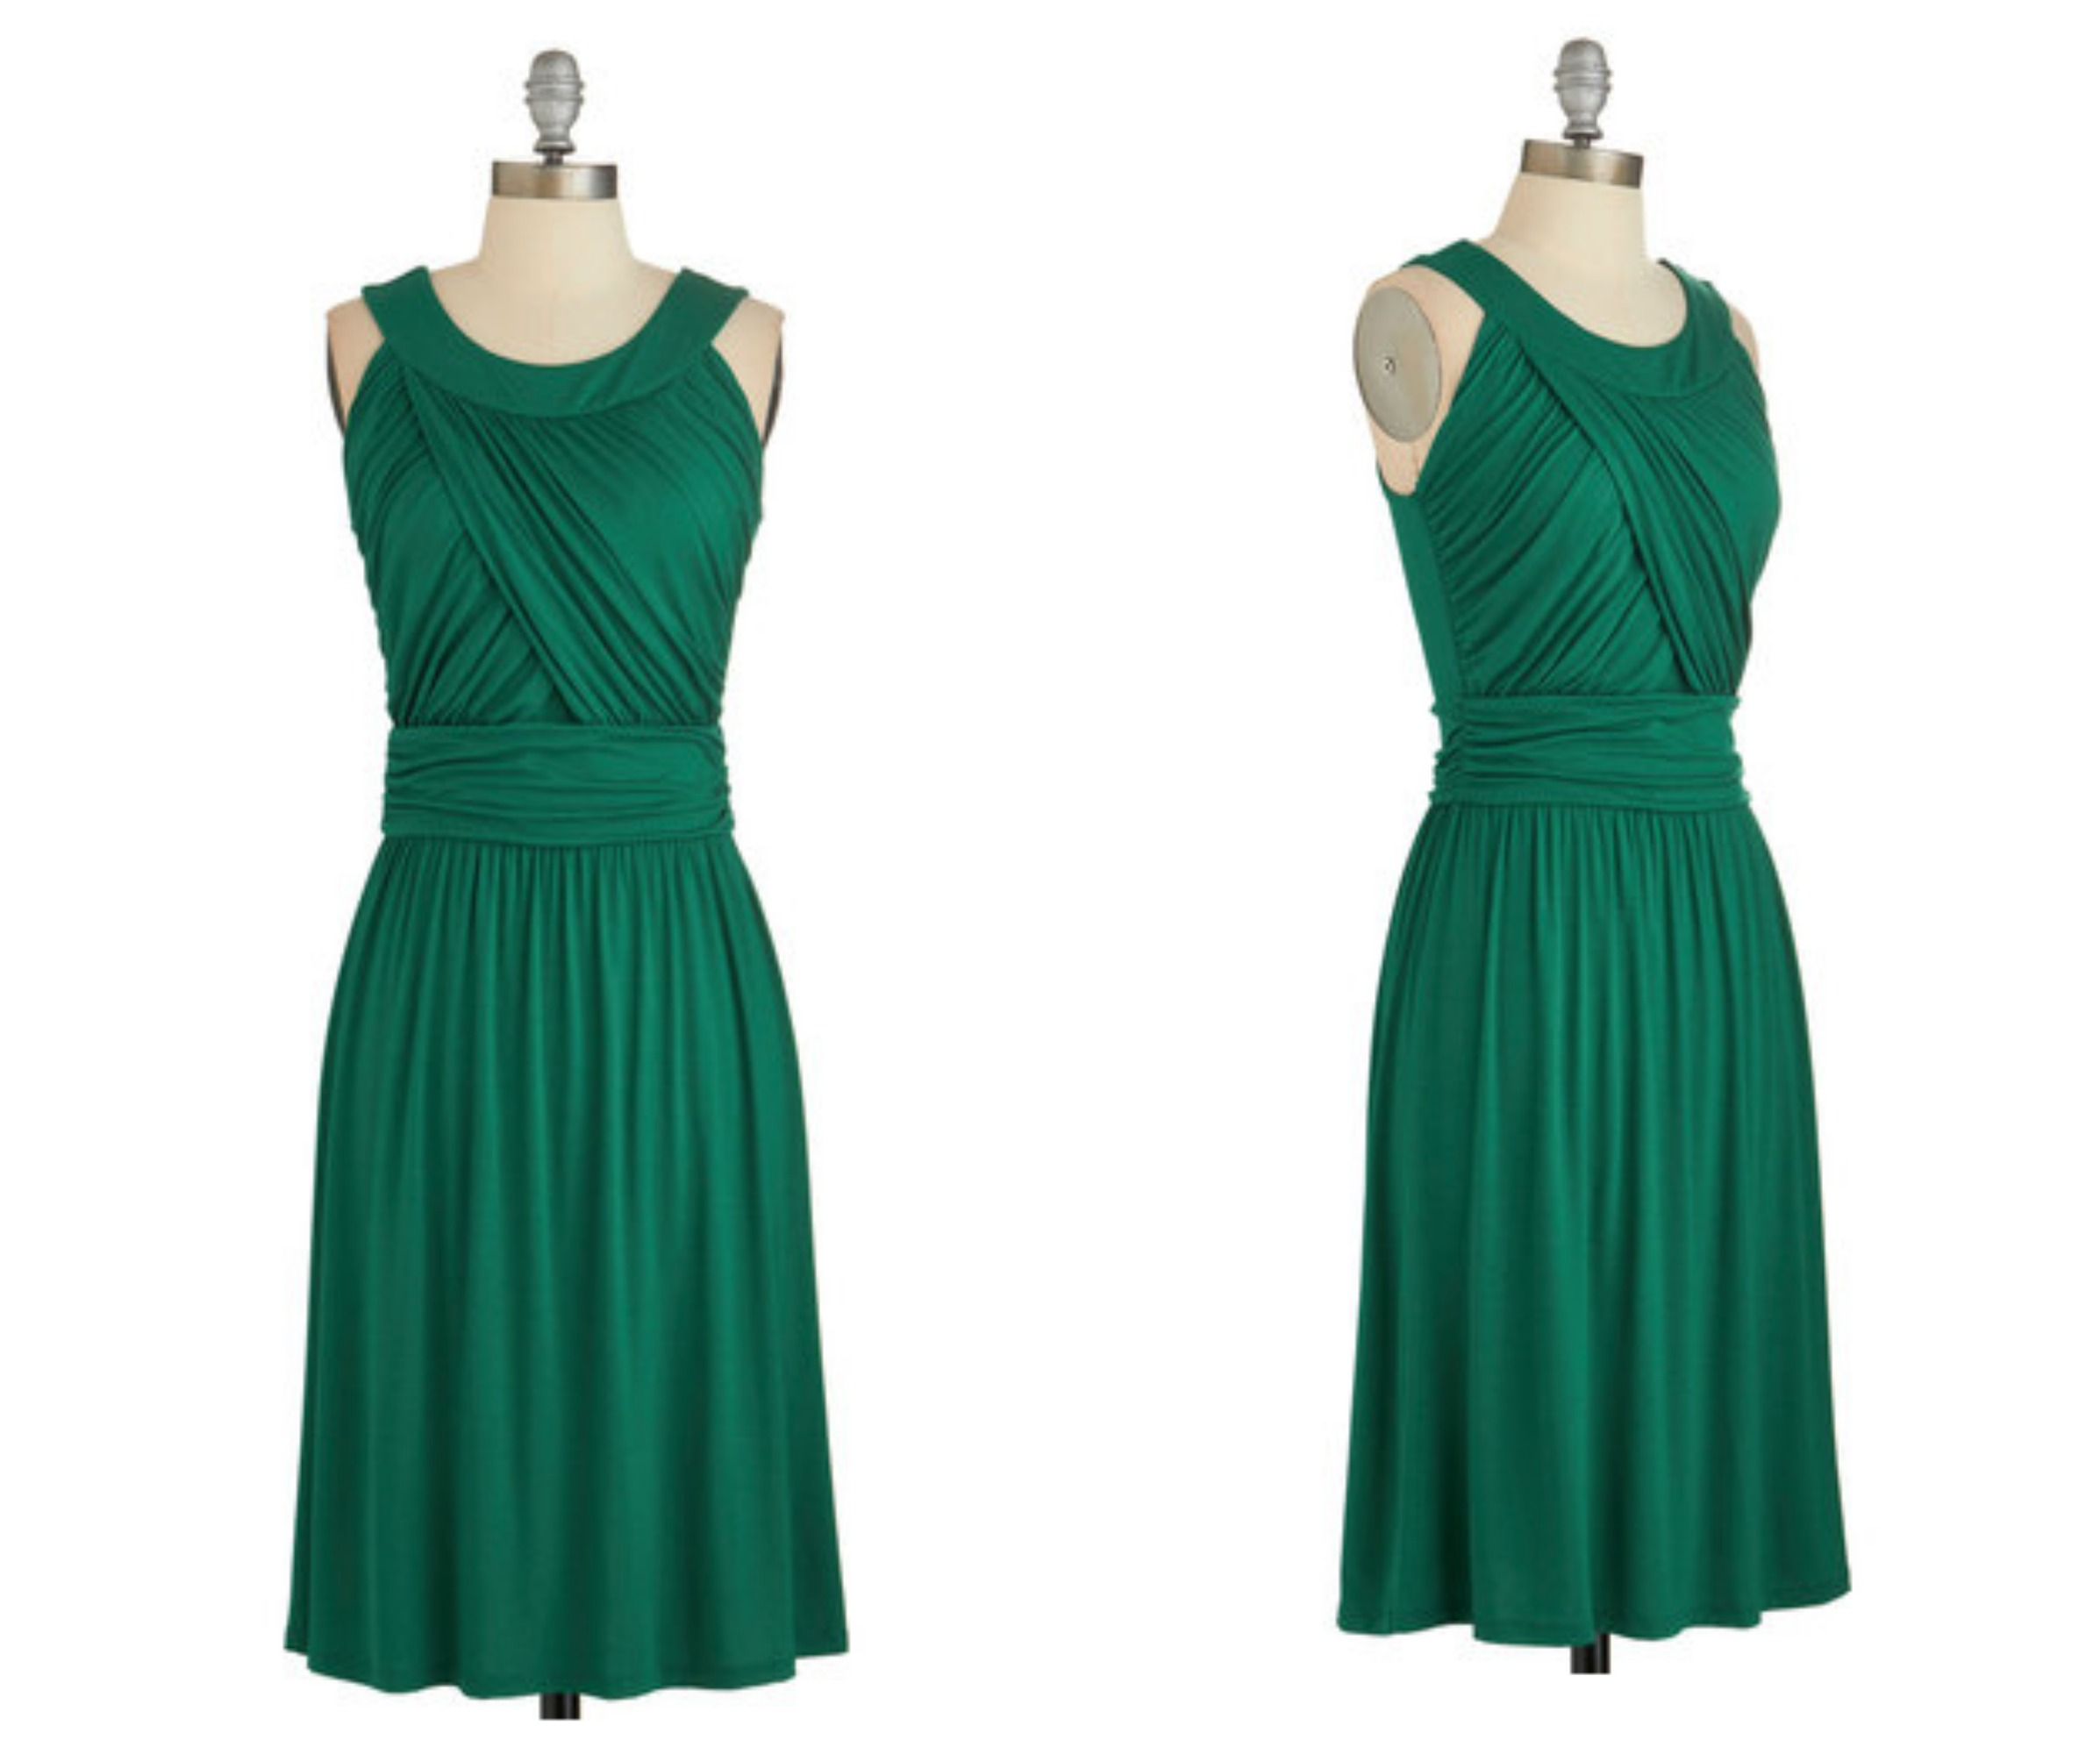 Budget & Cheap Bridesmaid Dresses